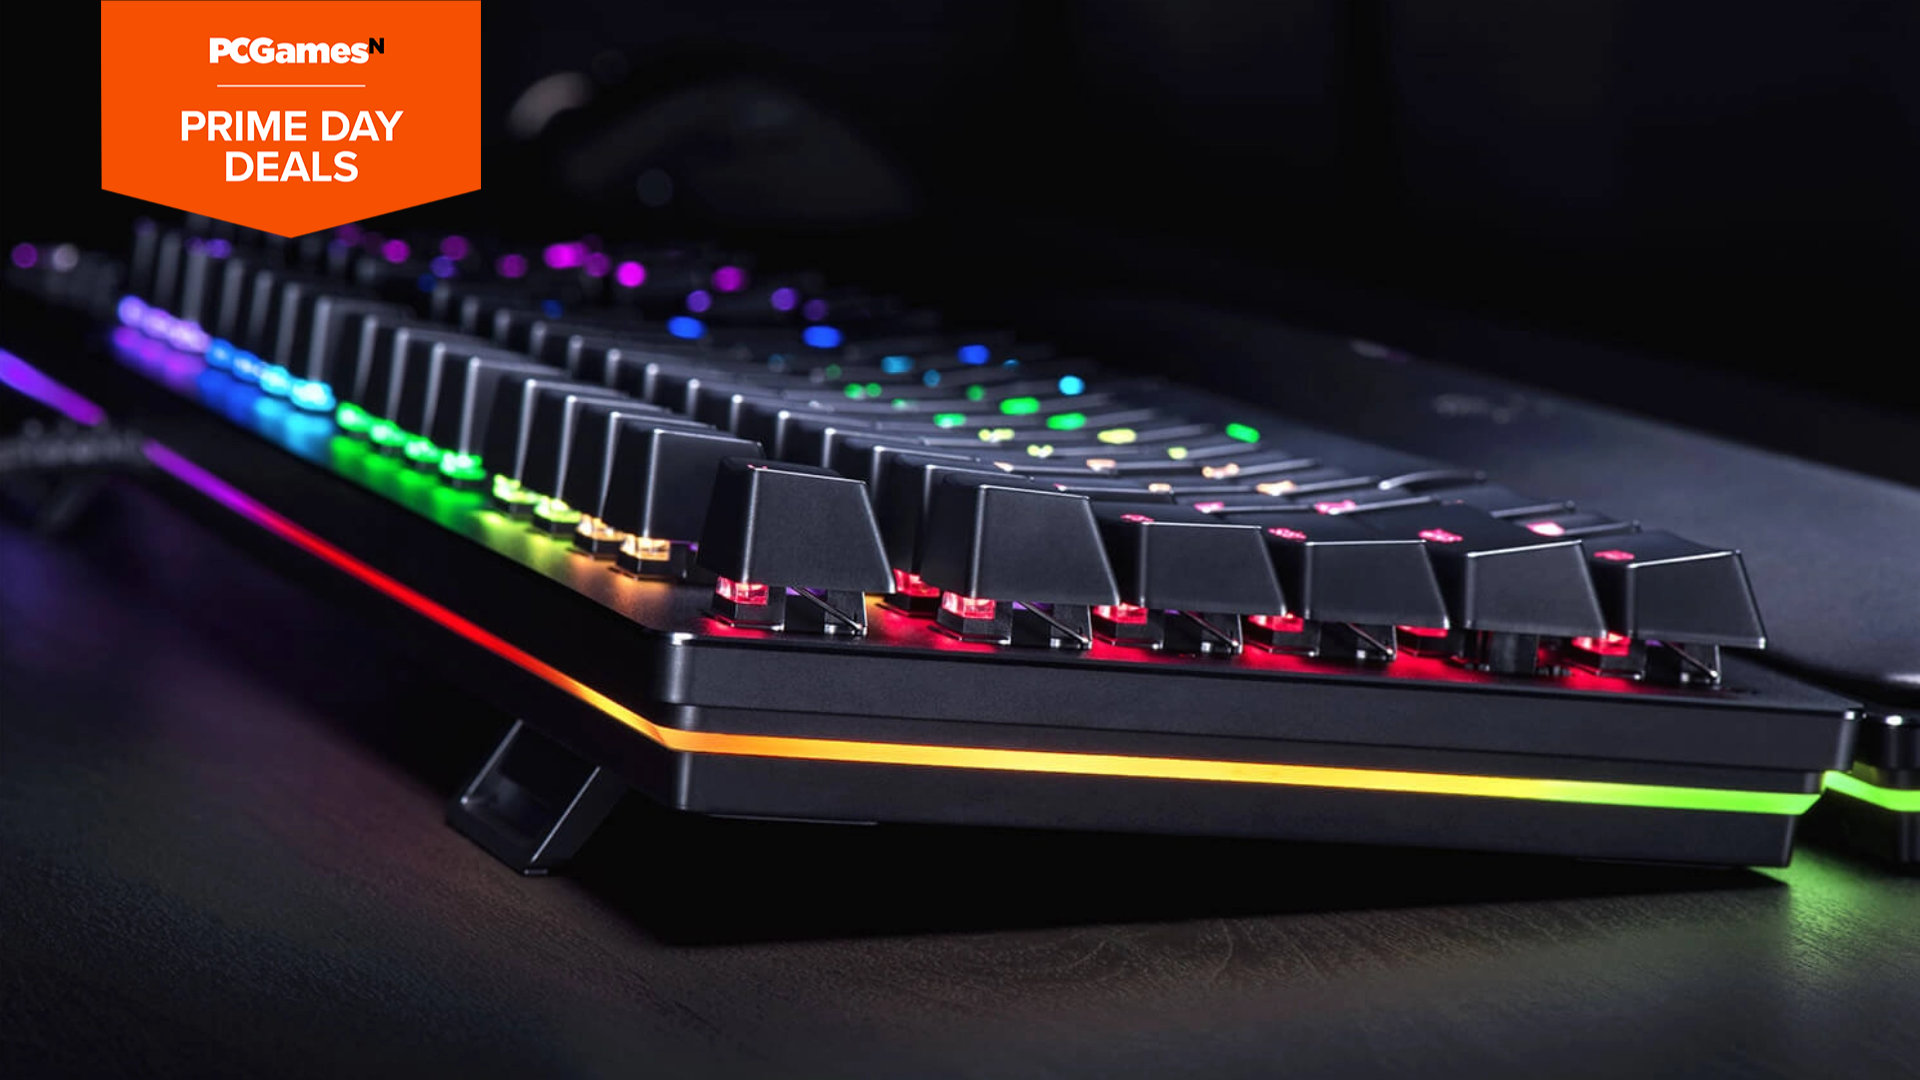 The best Amazon Prime Day gaming keyboard deals